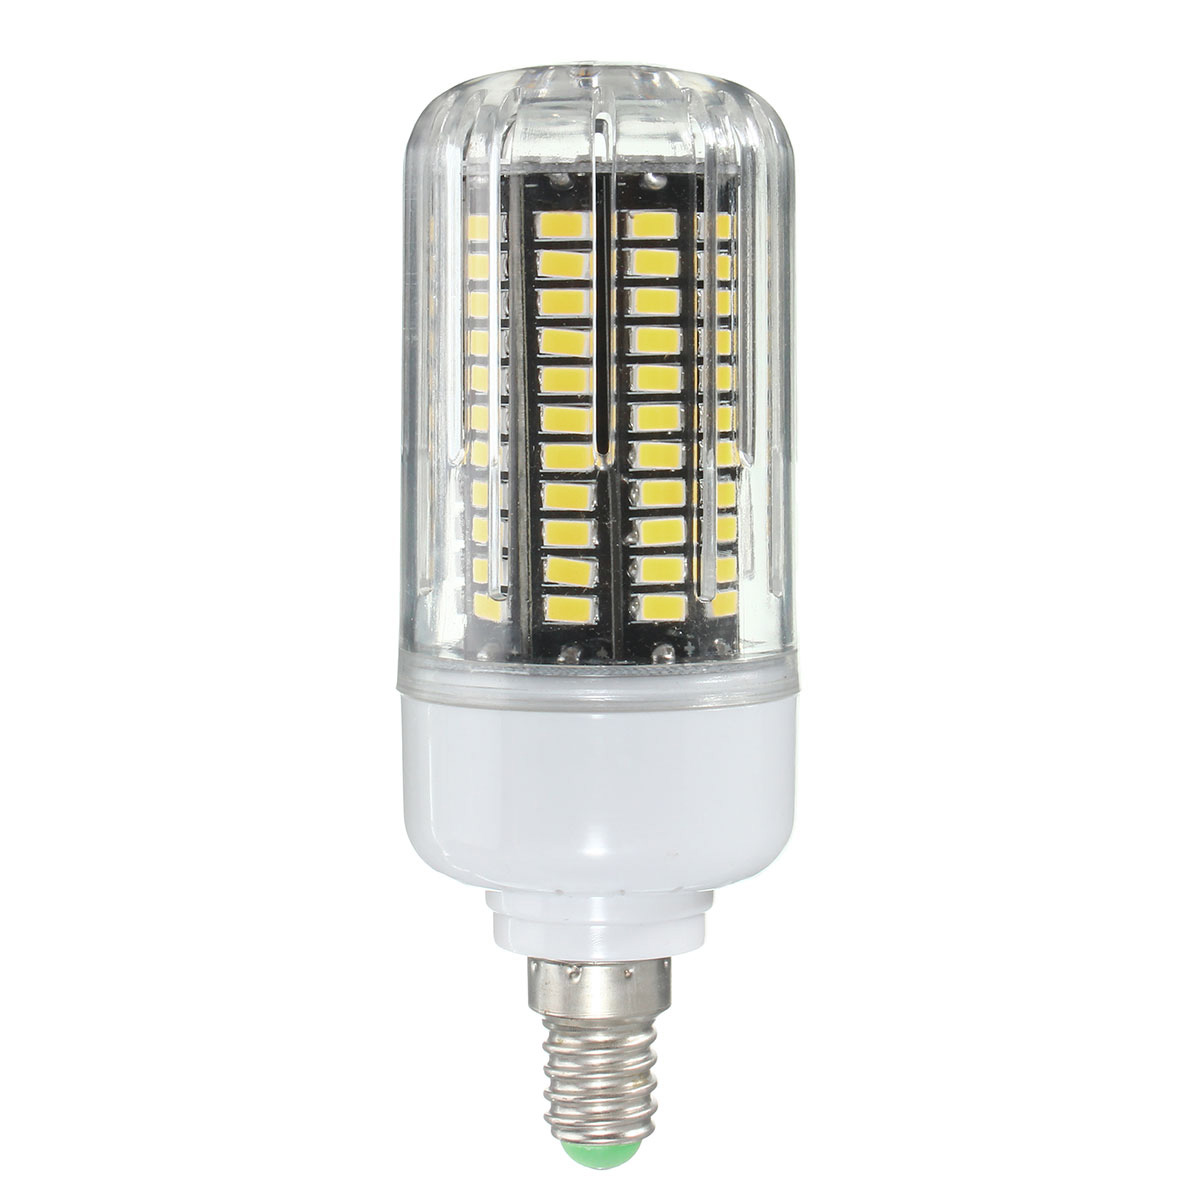 E27 E14 E12E E17 B22 15W 130 SMD 5736 LED Pure White Warm White Cover Corn Bulb AC85-265V